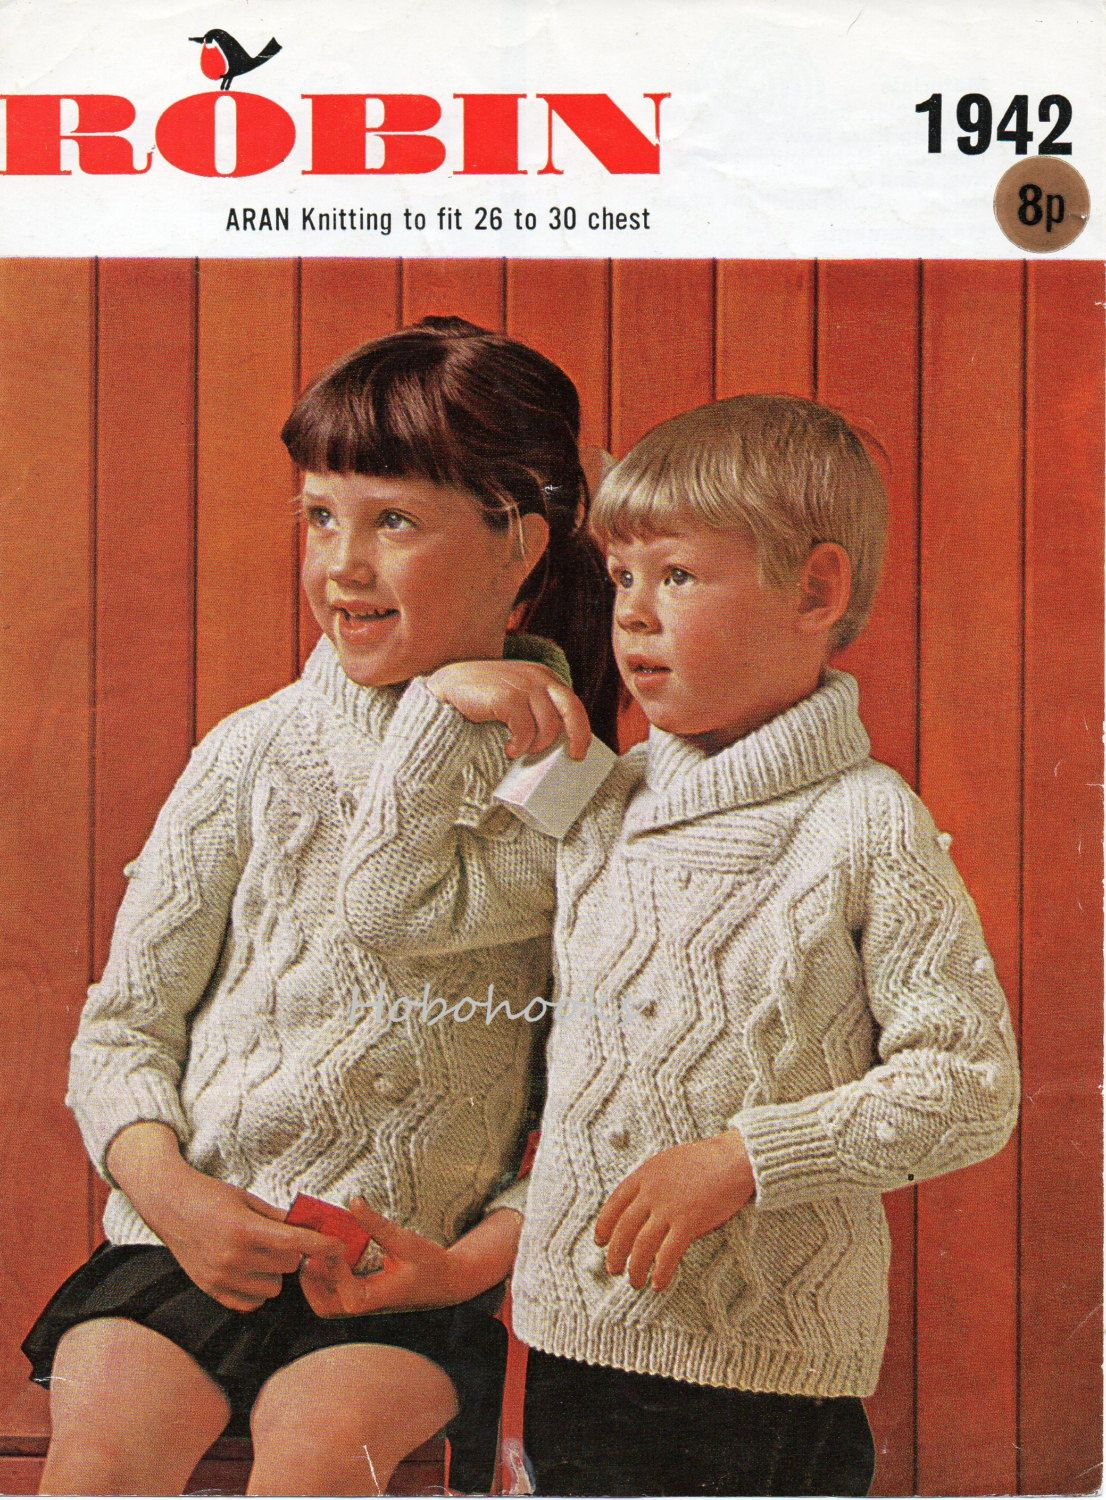 Vintage childrens aran sweater knitting pattern pdf shawl collar vintage childrens aran sweater knitting pattern pdf shawl collar cable jumper 26 30 inch aran worsted 10ply pdf instant download bankloansurffo Choice Image